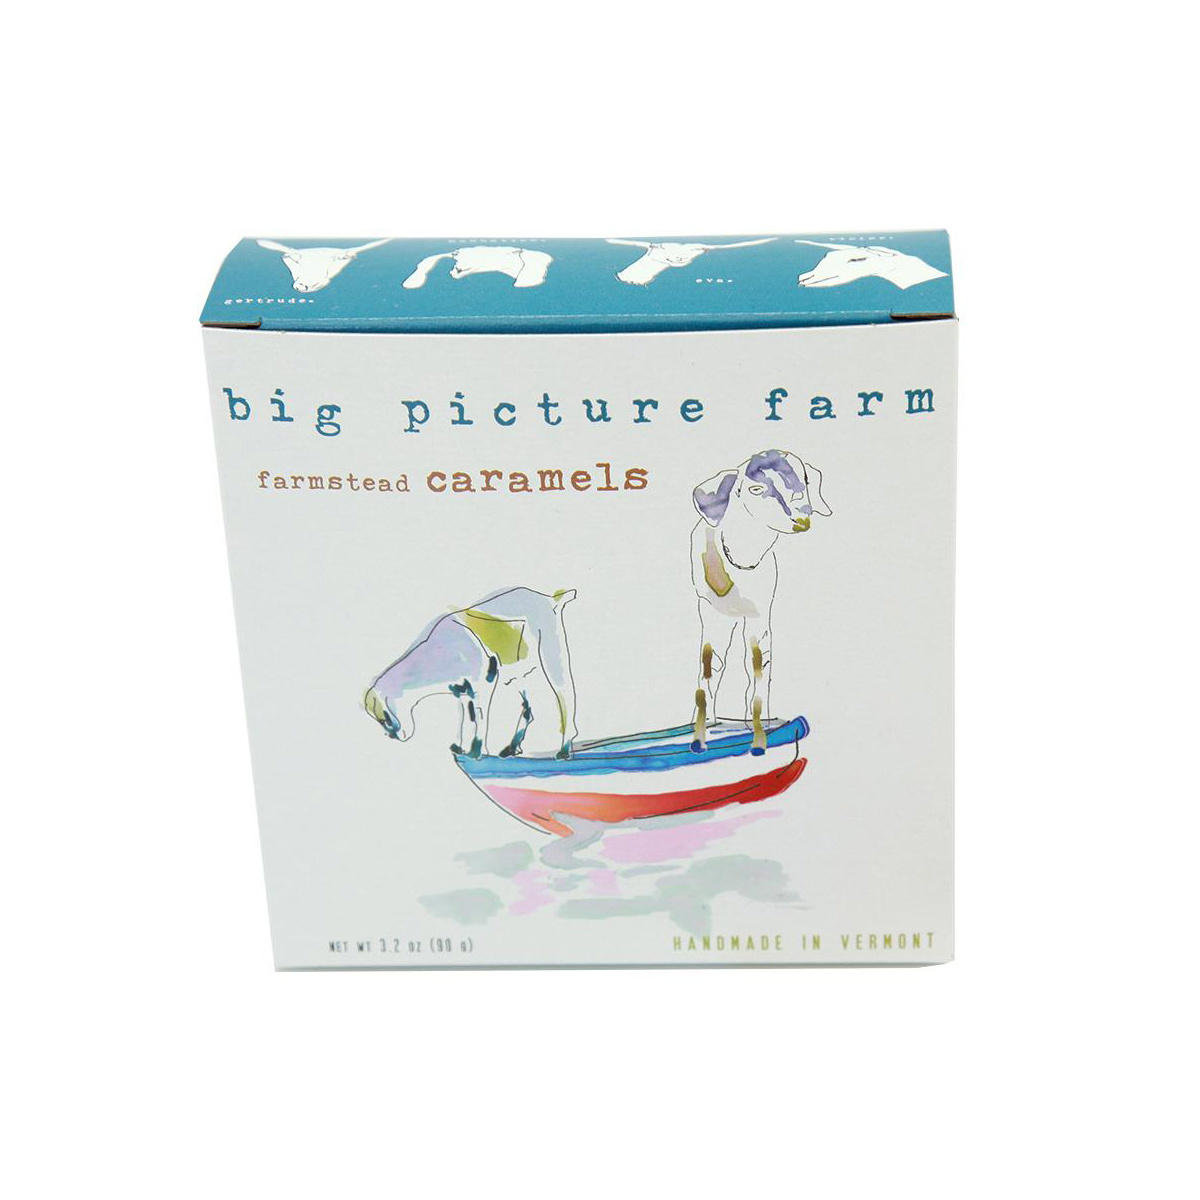 big picture farm Summertime Boat Box - Goat's Milk Caramels